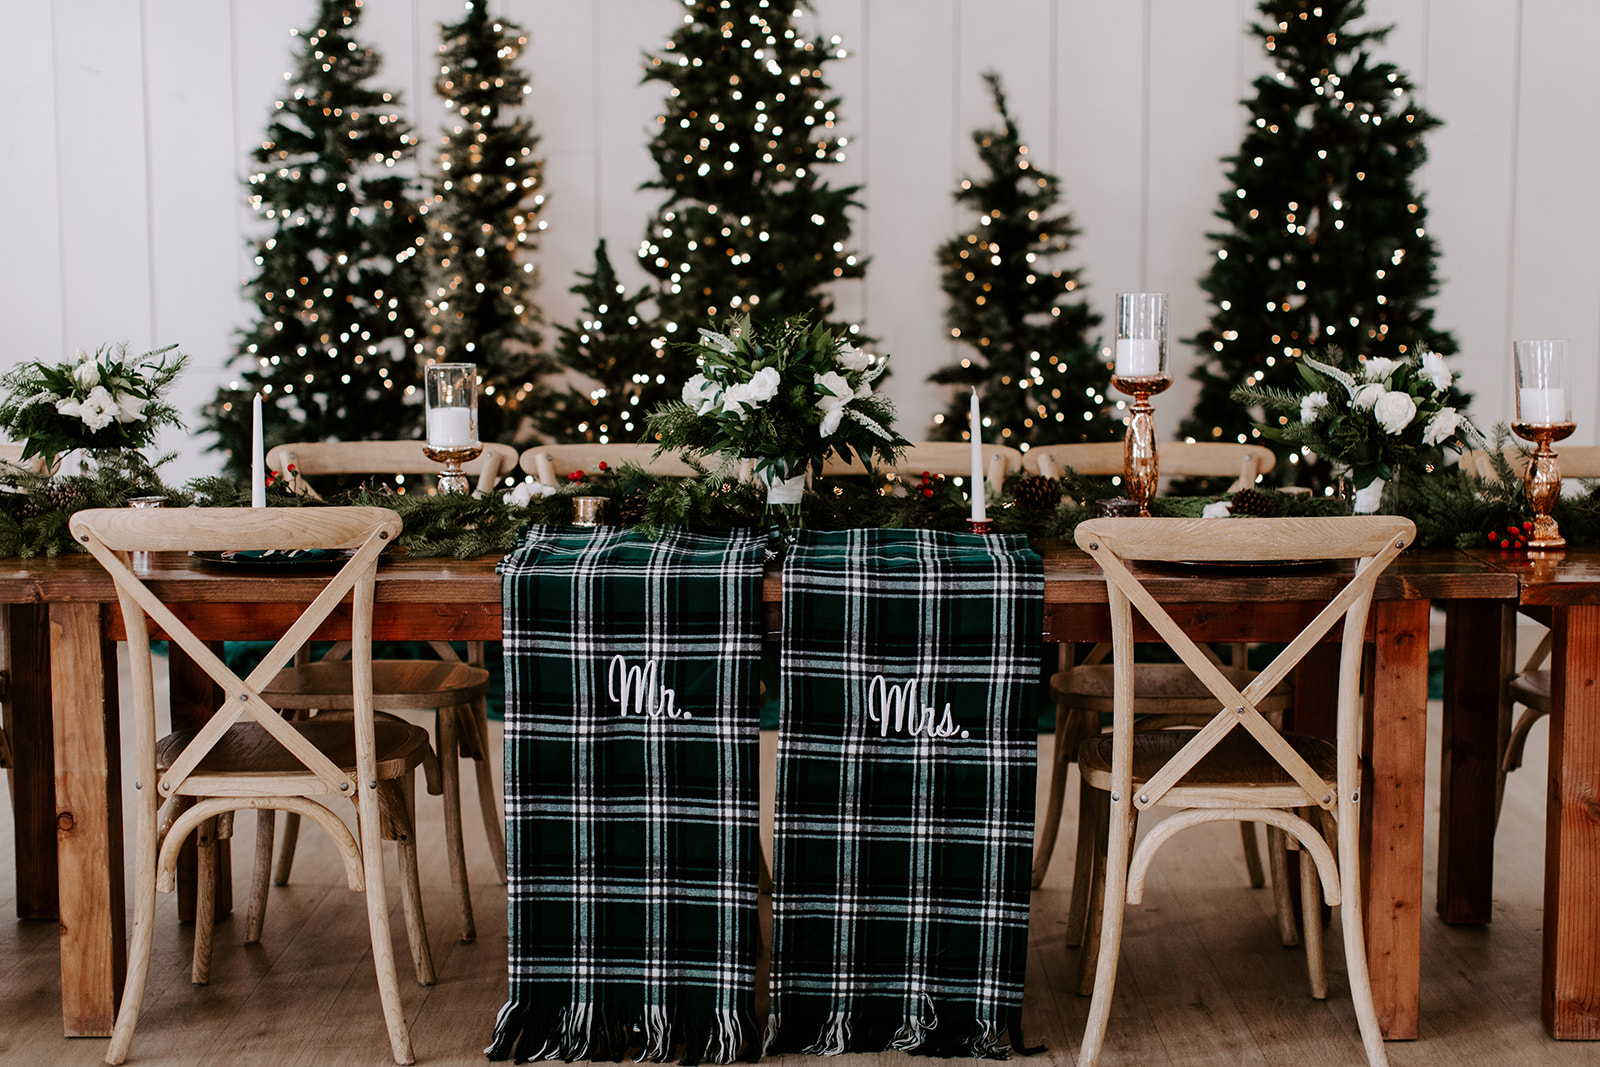 Plaid Wedding Decor: Romantic Winter Wedding at The Grand Ivory